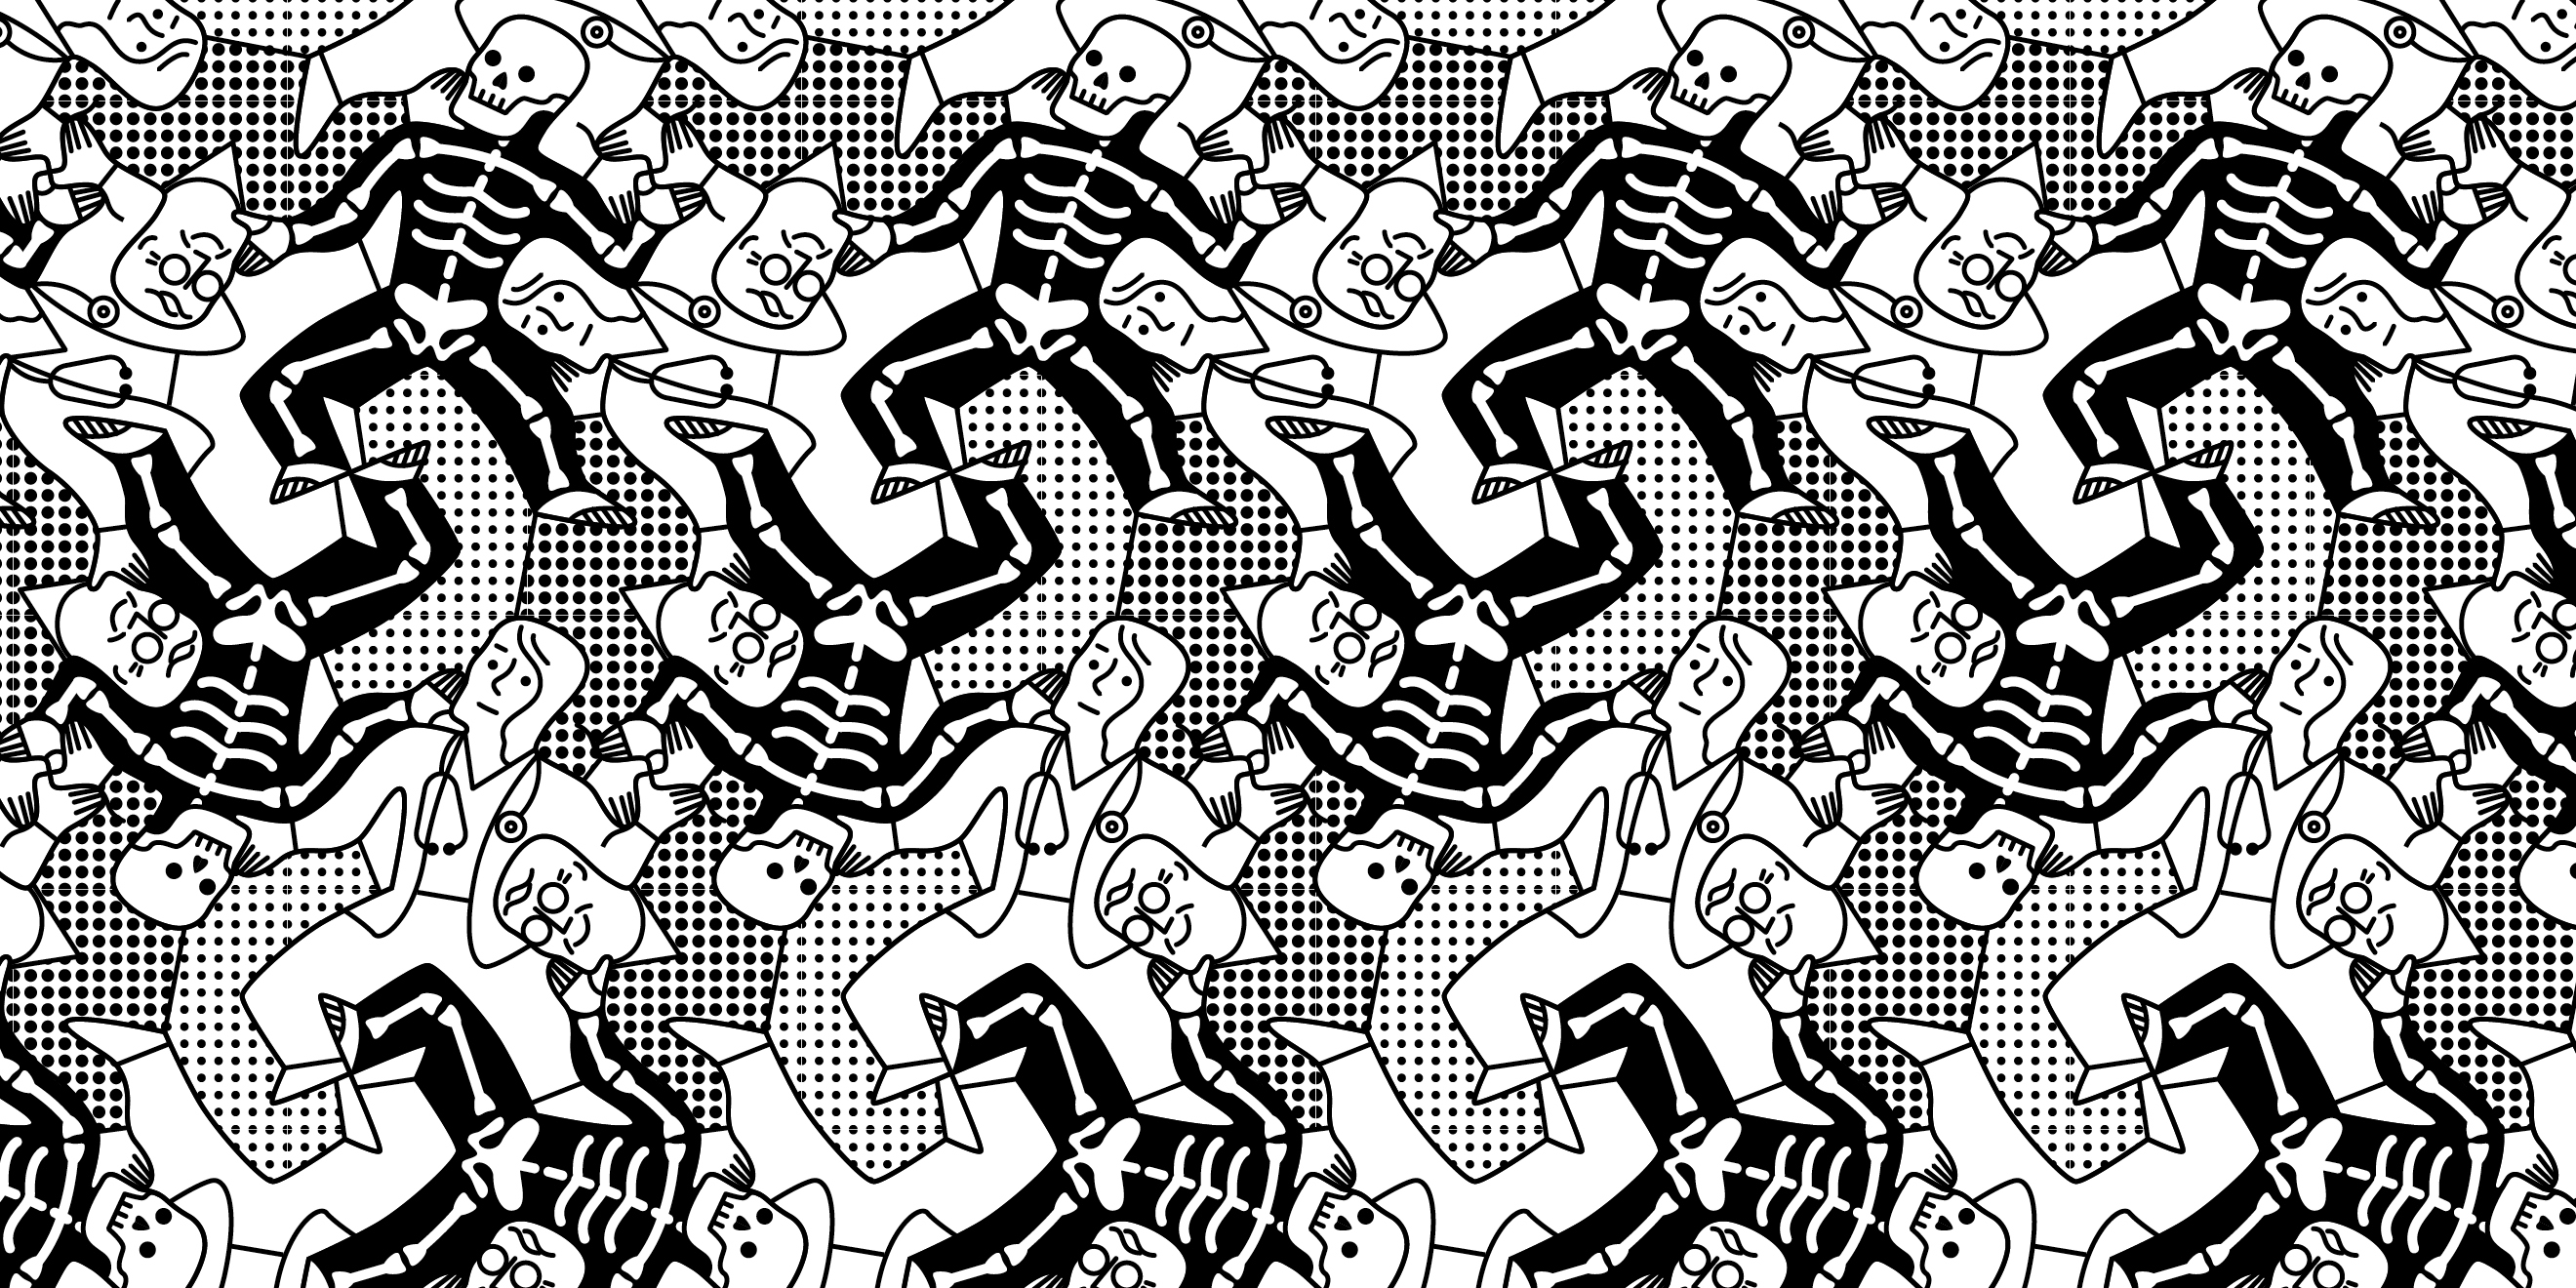 Repeating pattern illustration from Weapons of Reason: The New Old magazine